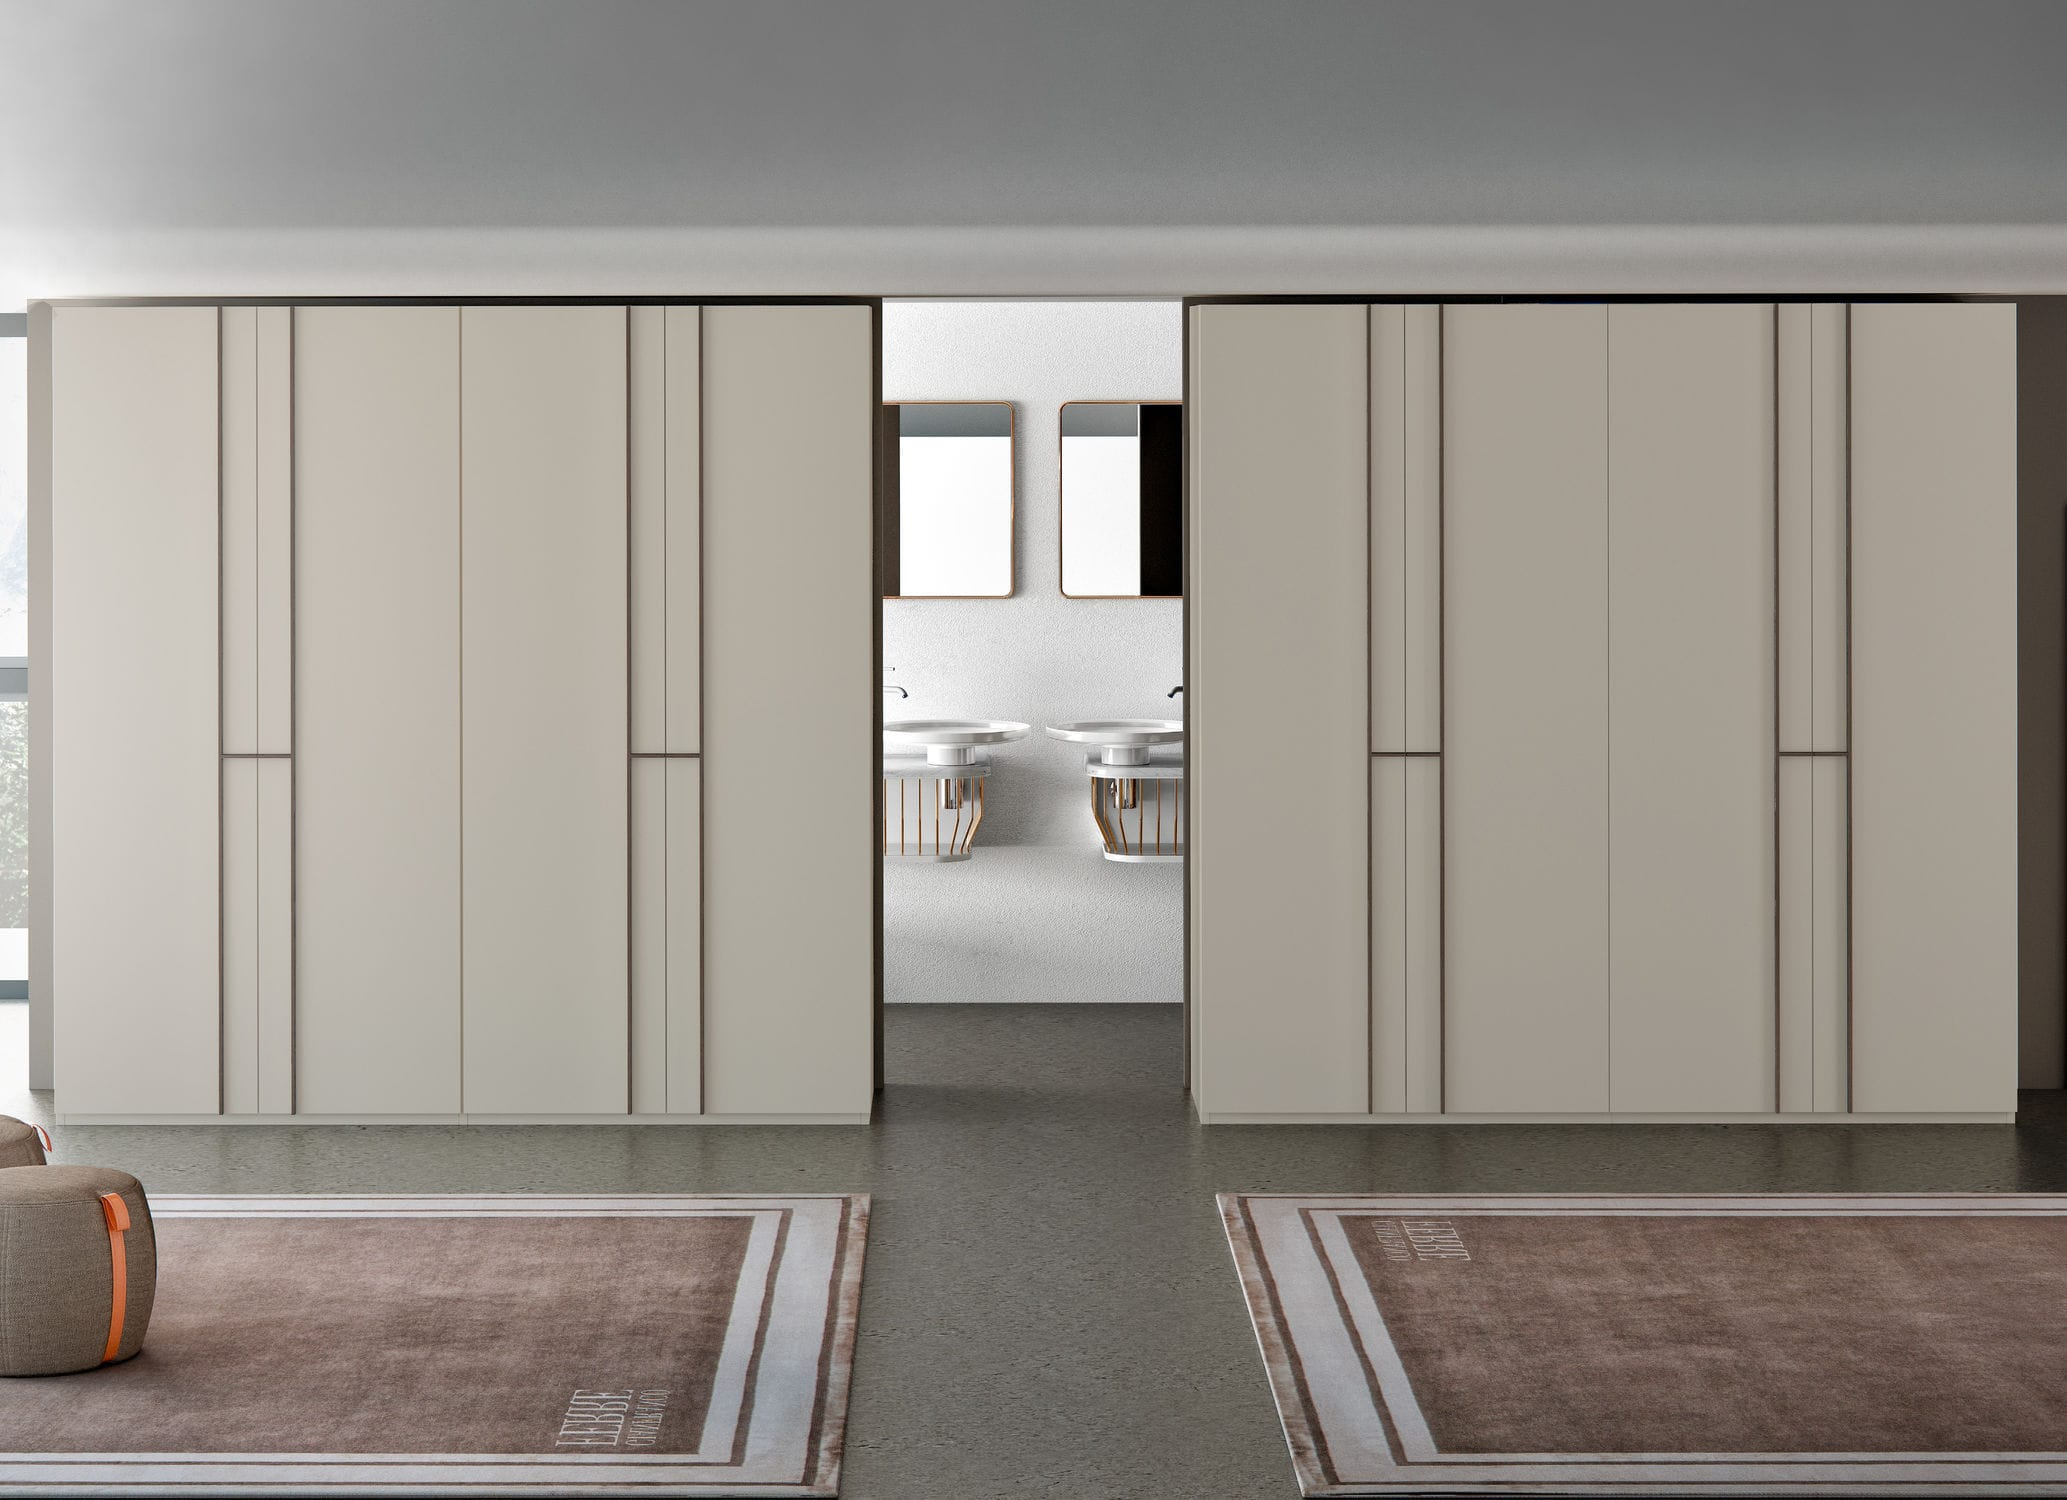 objects series s lacantin inswing swing doors clad bim contclad lacantina families door contemporary